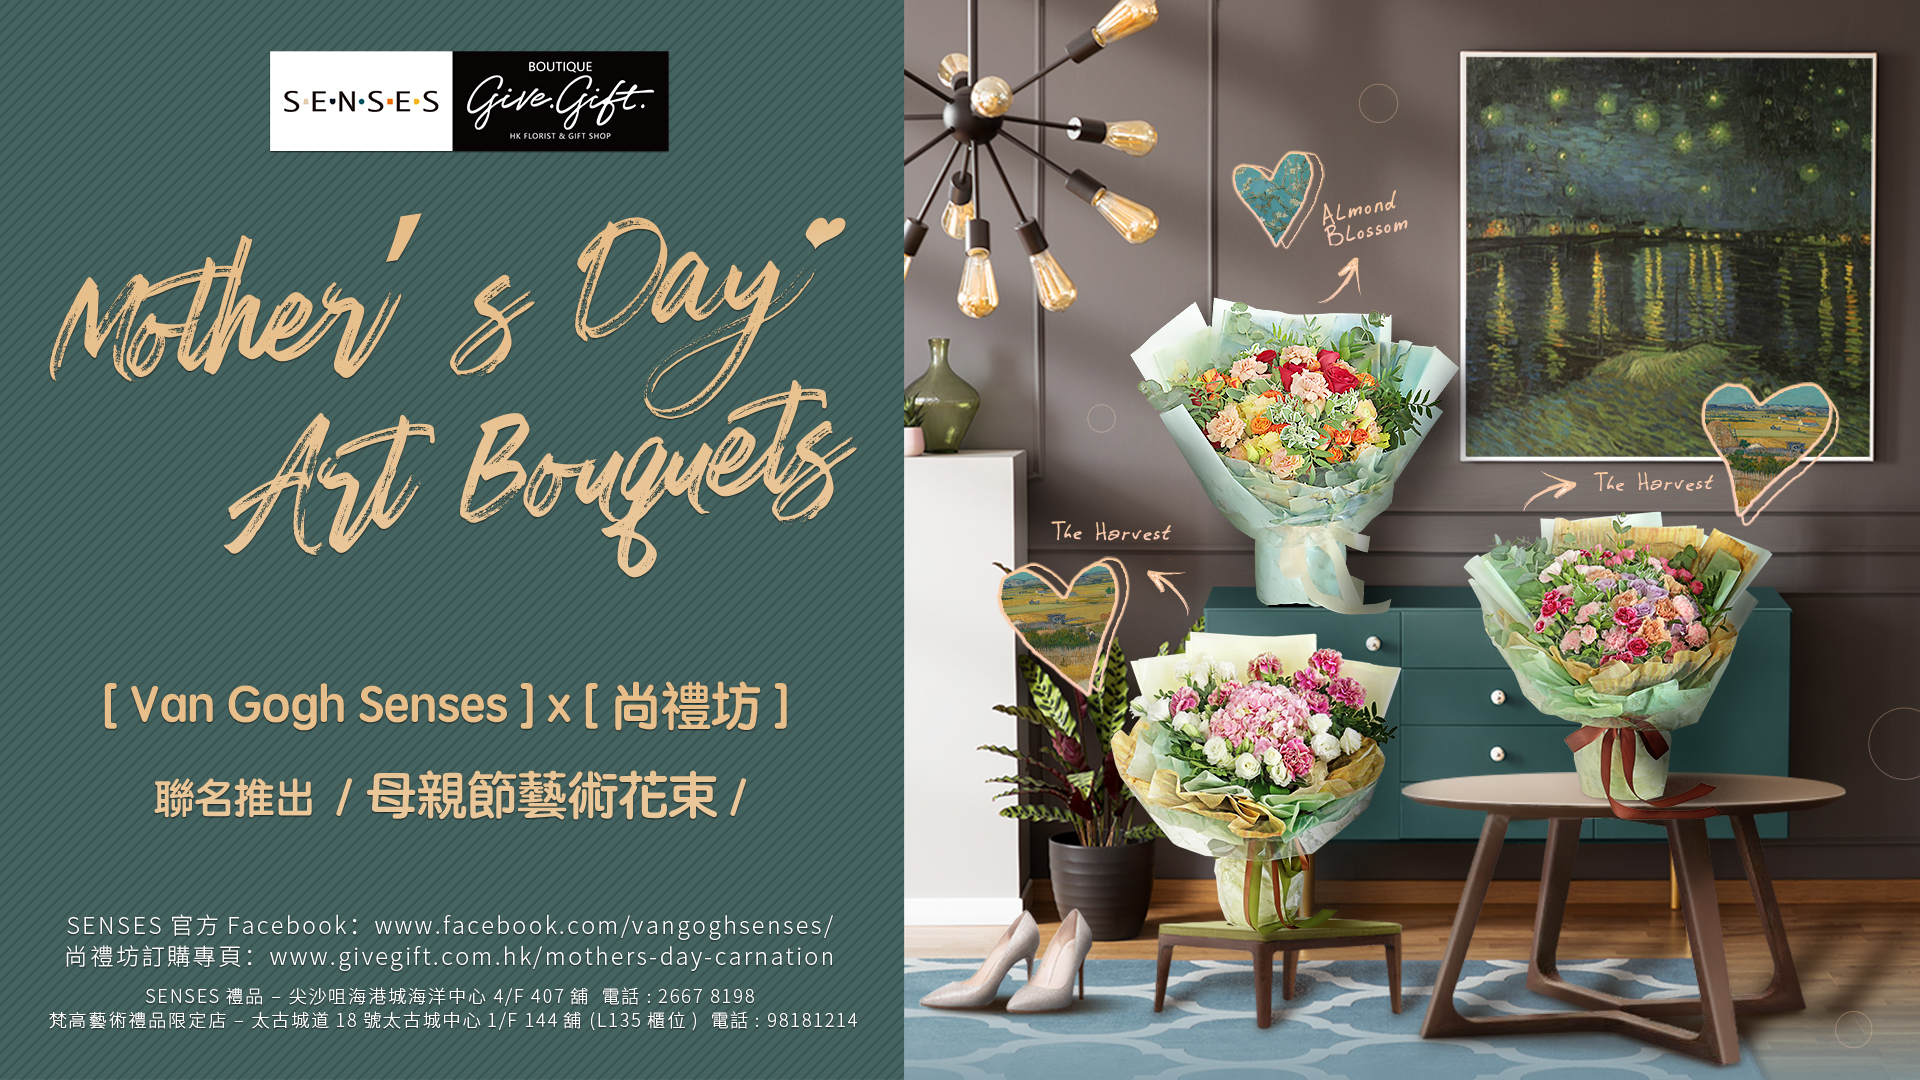 Van Gogh SENSES  Give Gift Boutique launched three Mothers Day Art Bouquets